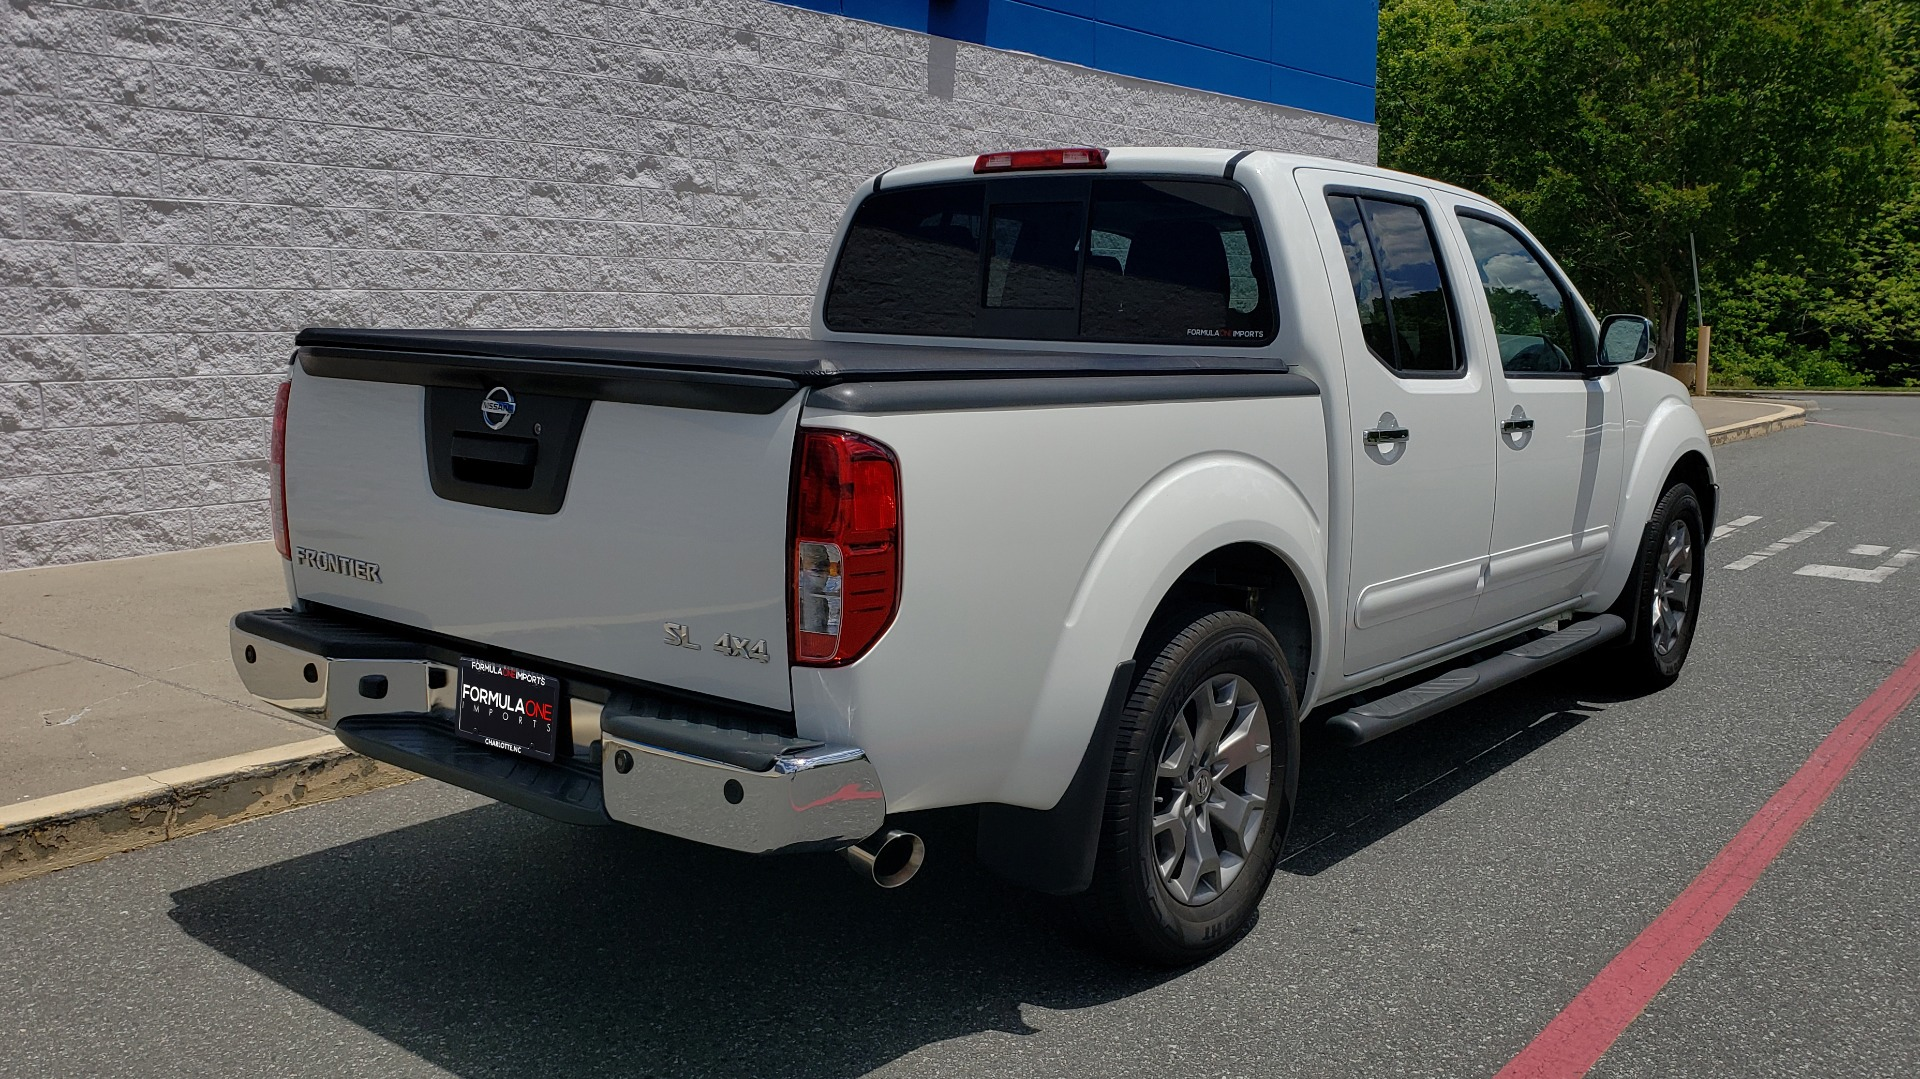 Used 2019 Nissan FRONTIER SL CREW CAB / 4X4 / NAV / SUNROOF / ROCKFORD FOSGATE / LOADED for sale $31,495 at Formula Imports in Charlotte NC 28227 4